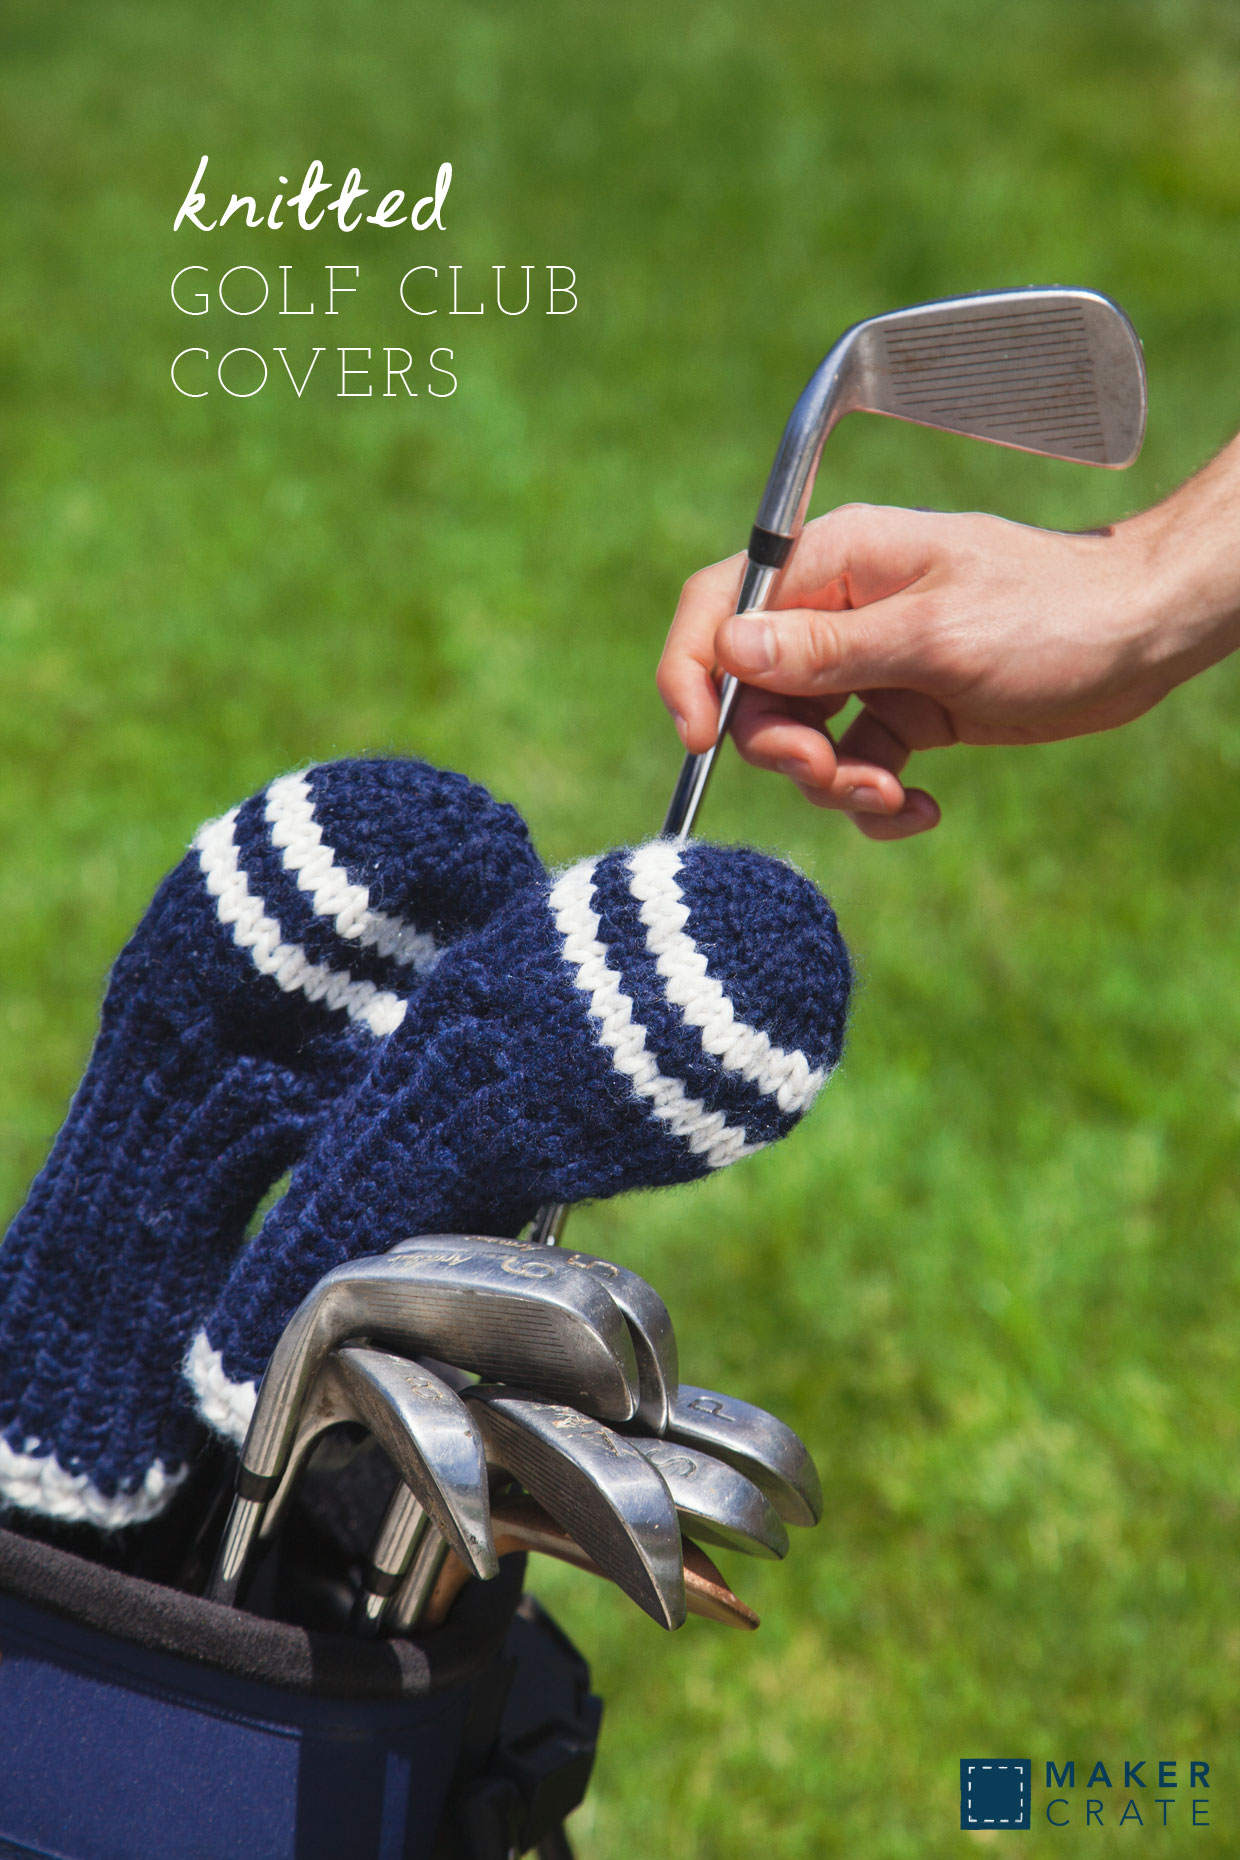 Knitted Golf Club Cover | Maker Crate